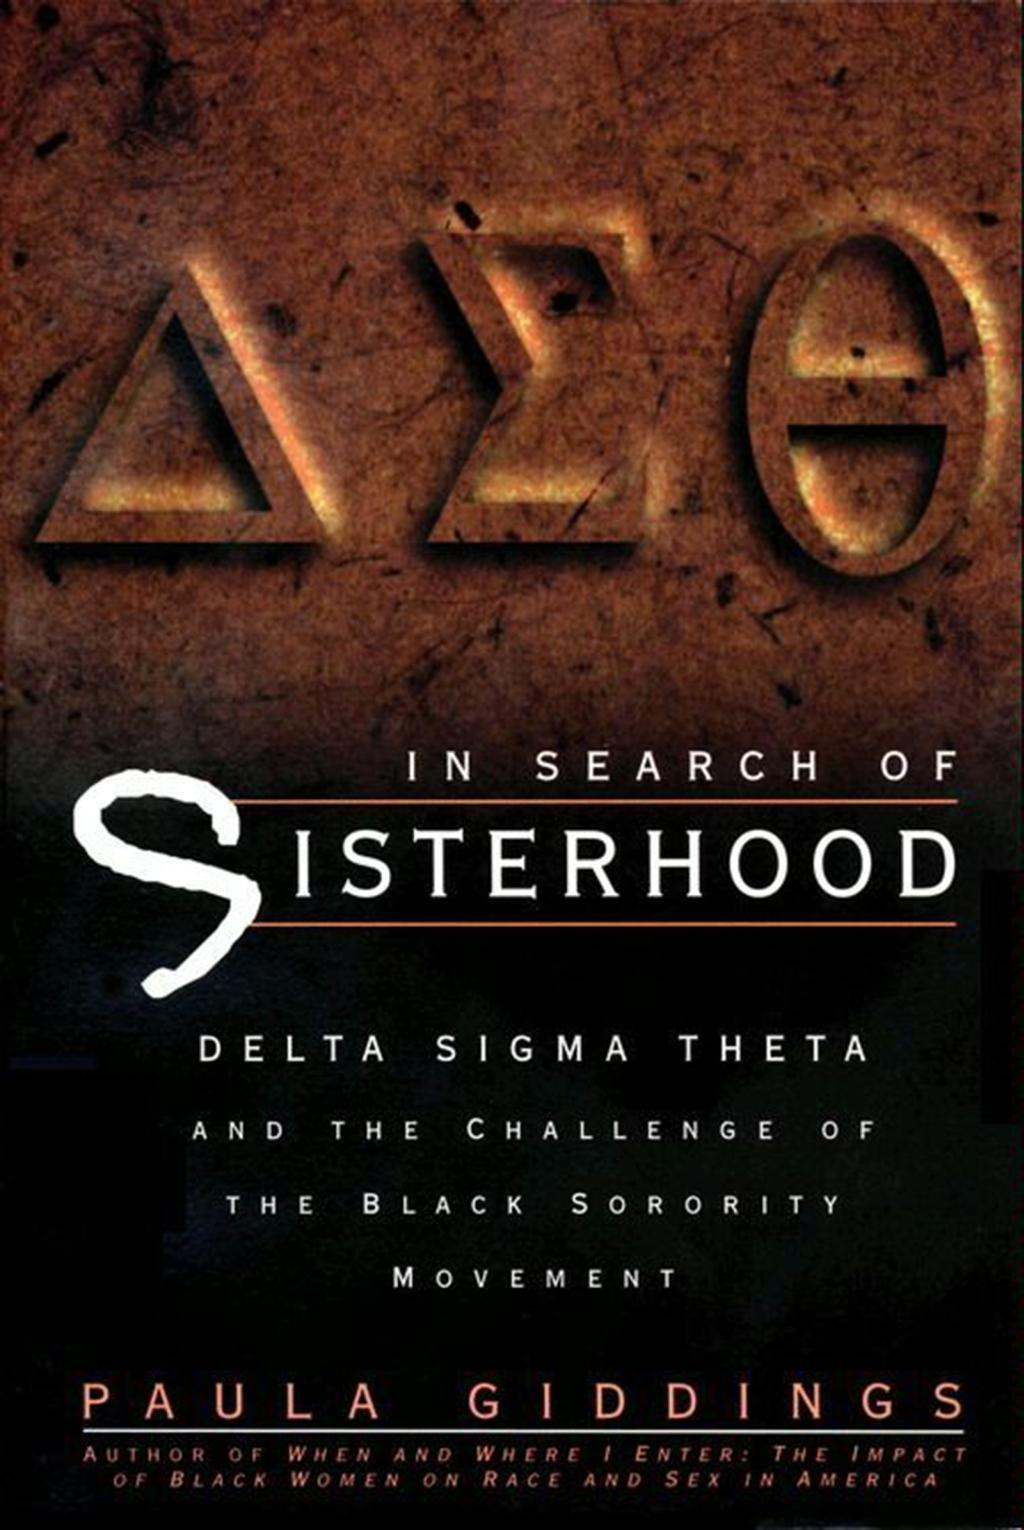 In Search of Sisterhood